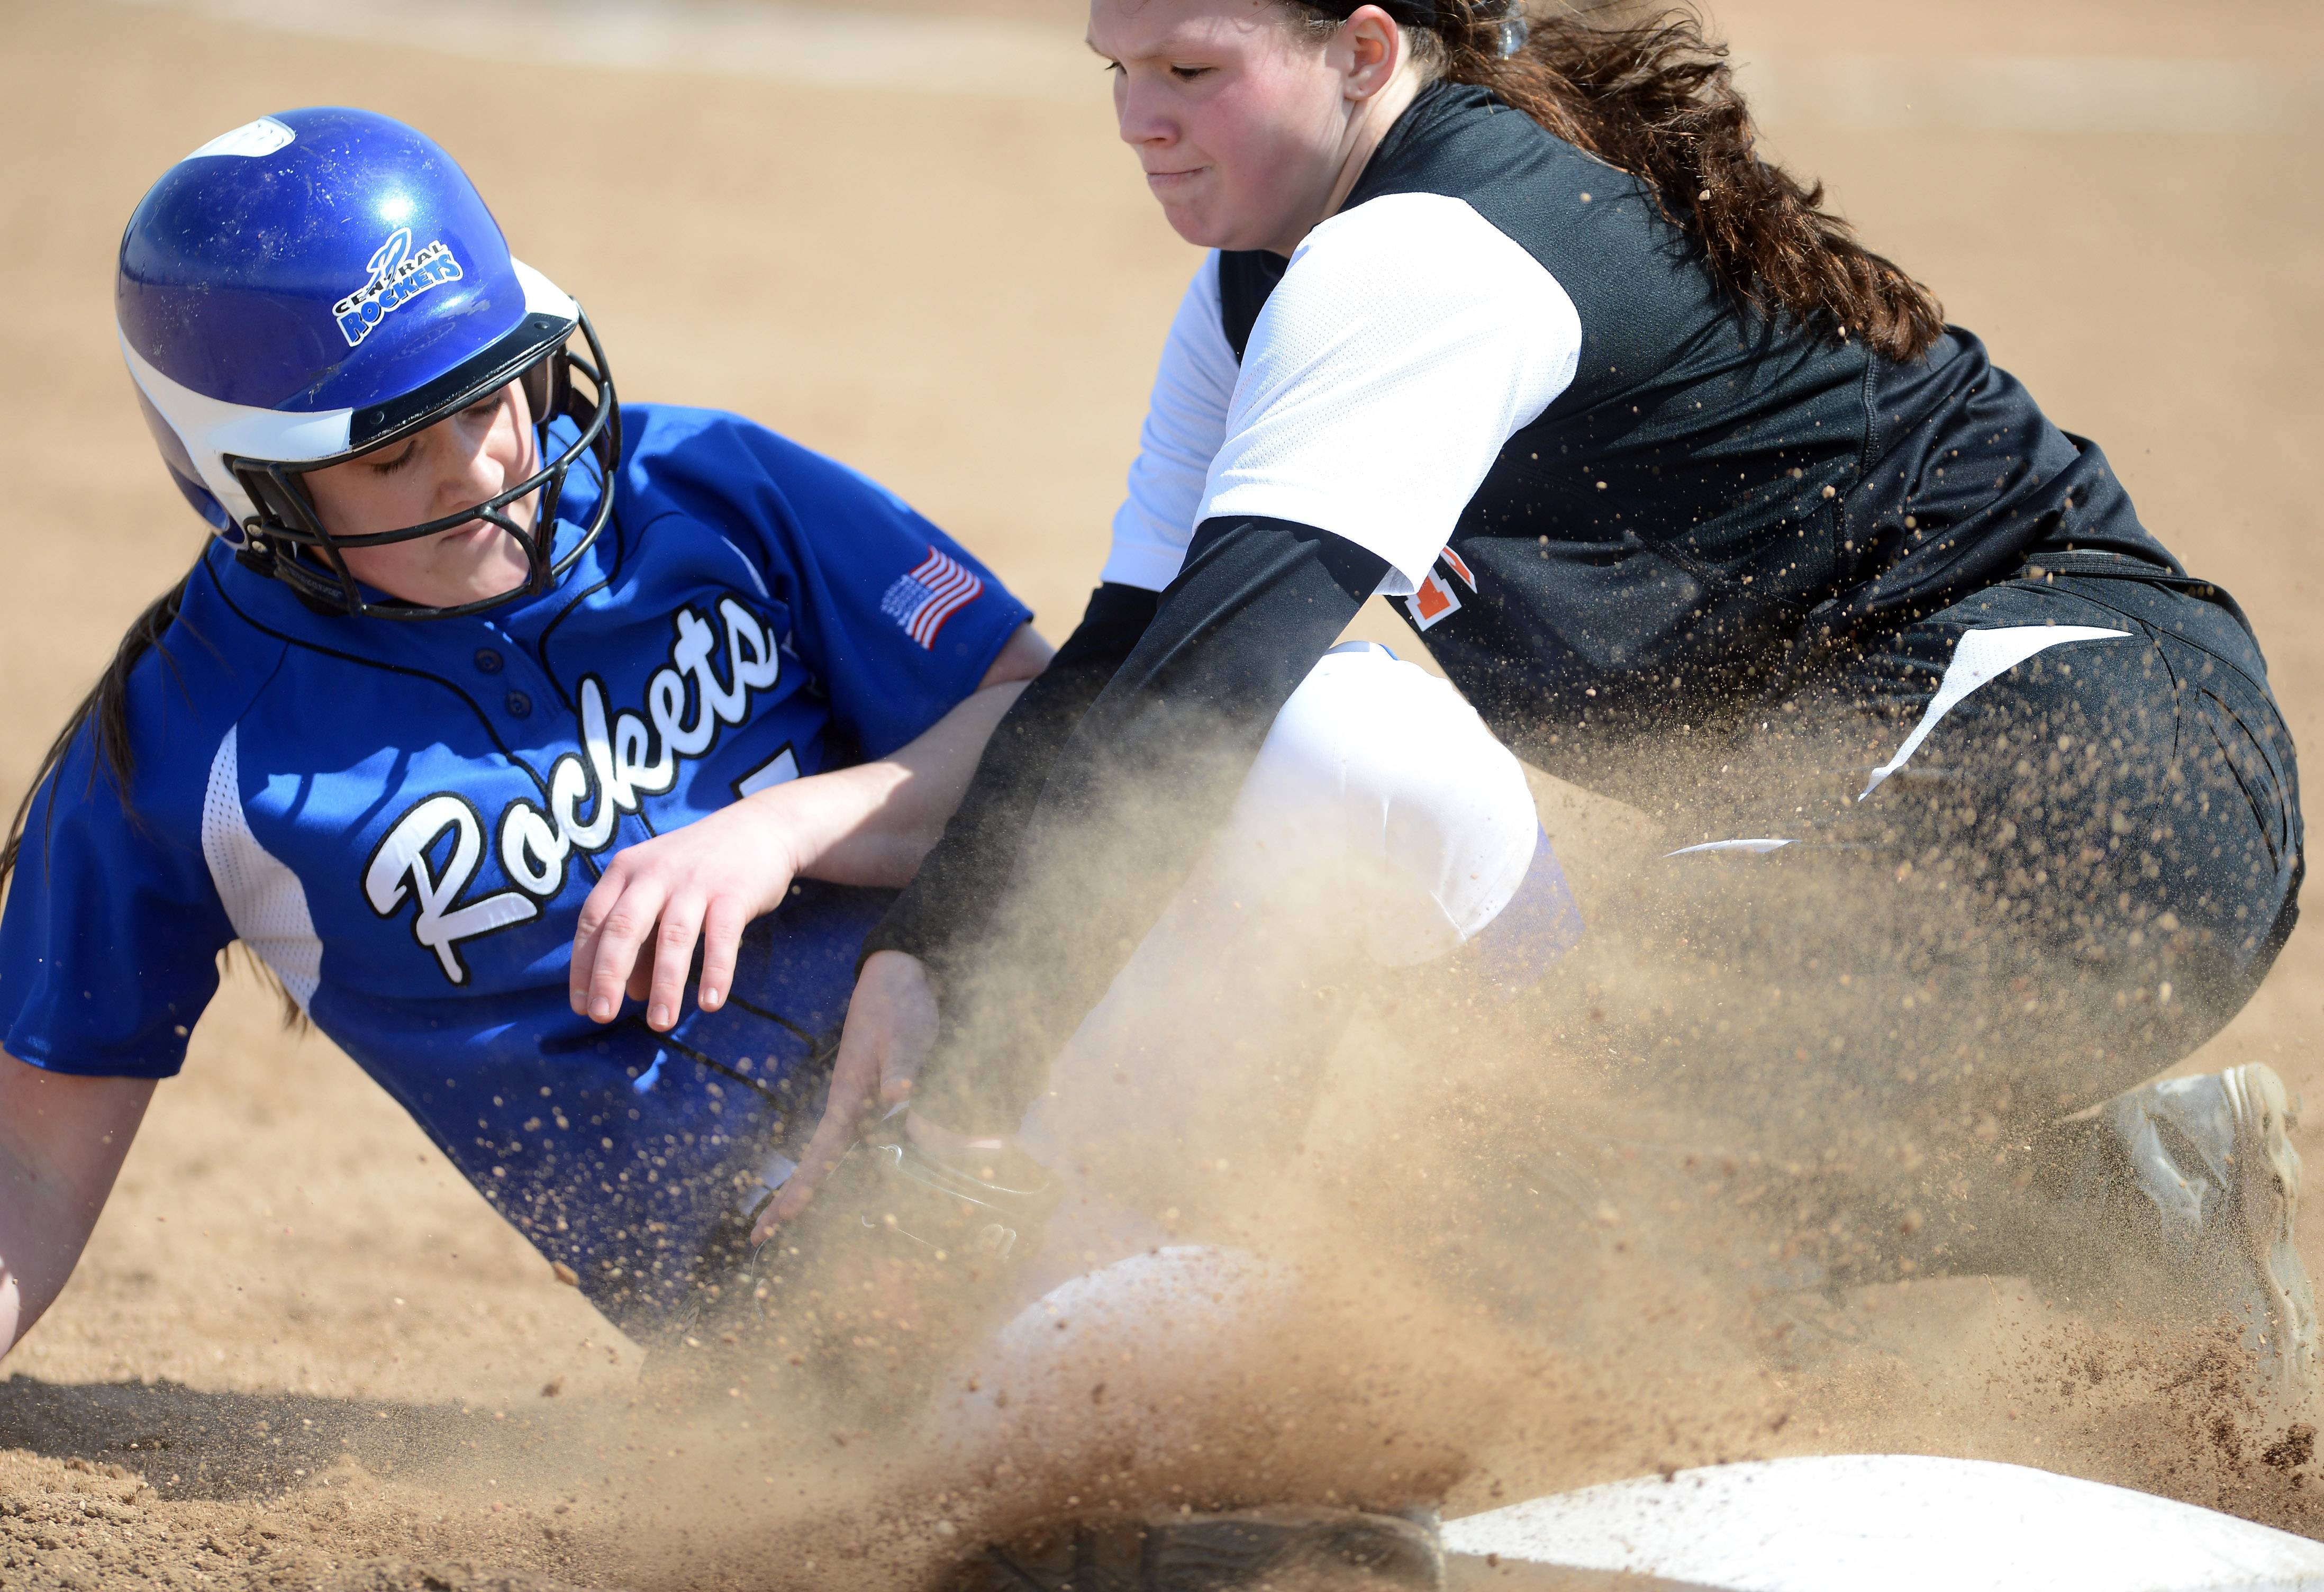 St. Charles East's Alex Latoria tags out Burlington Central's Bekah Harnish at third during Monday's game in St. Charles.